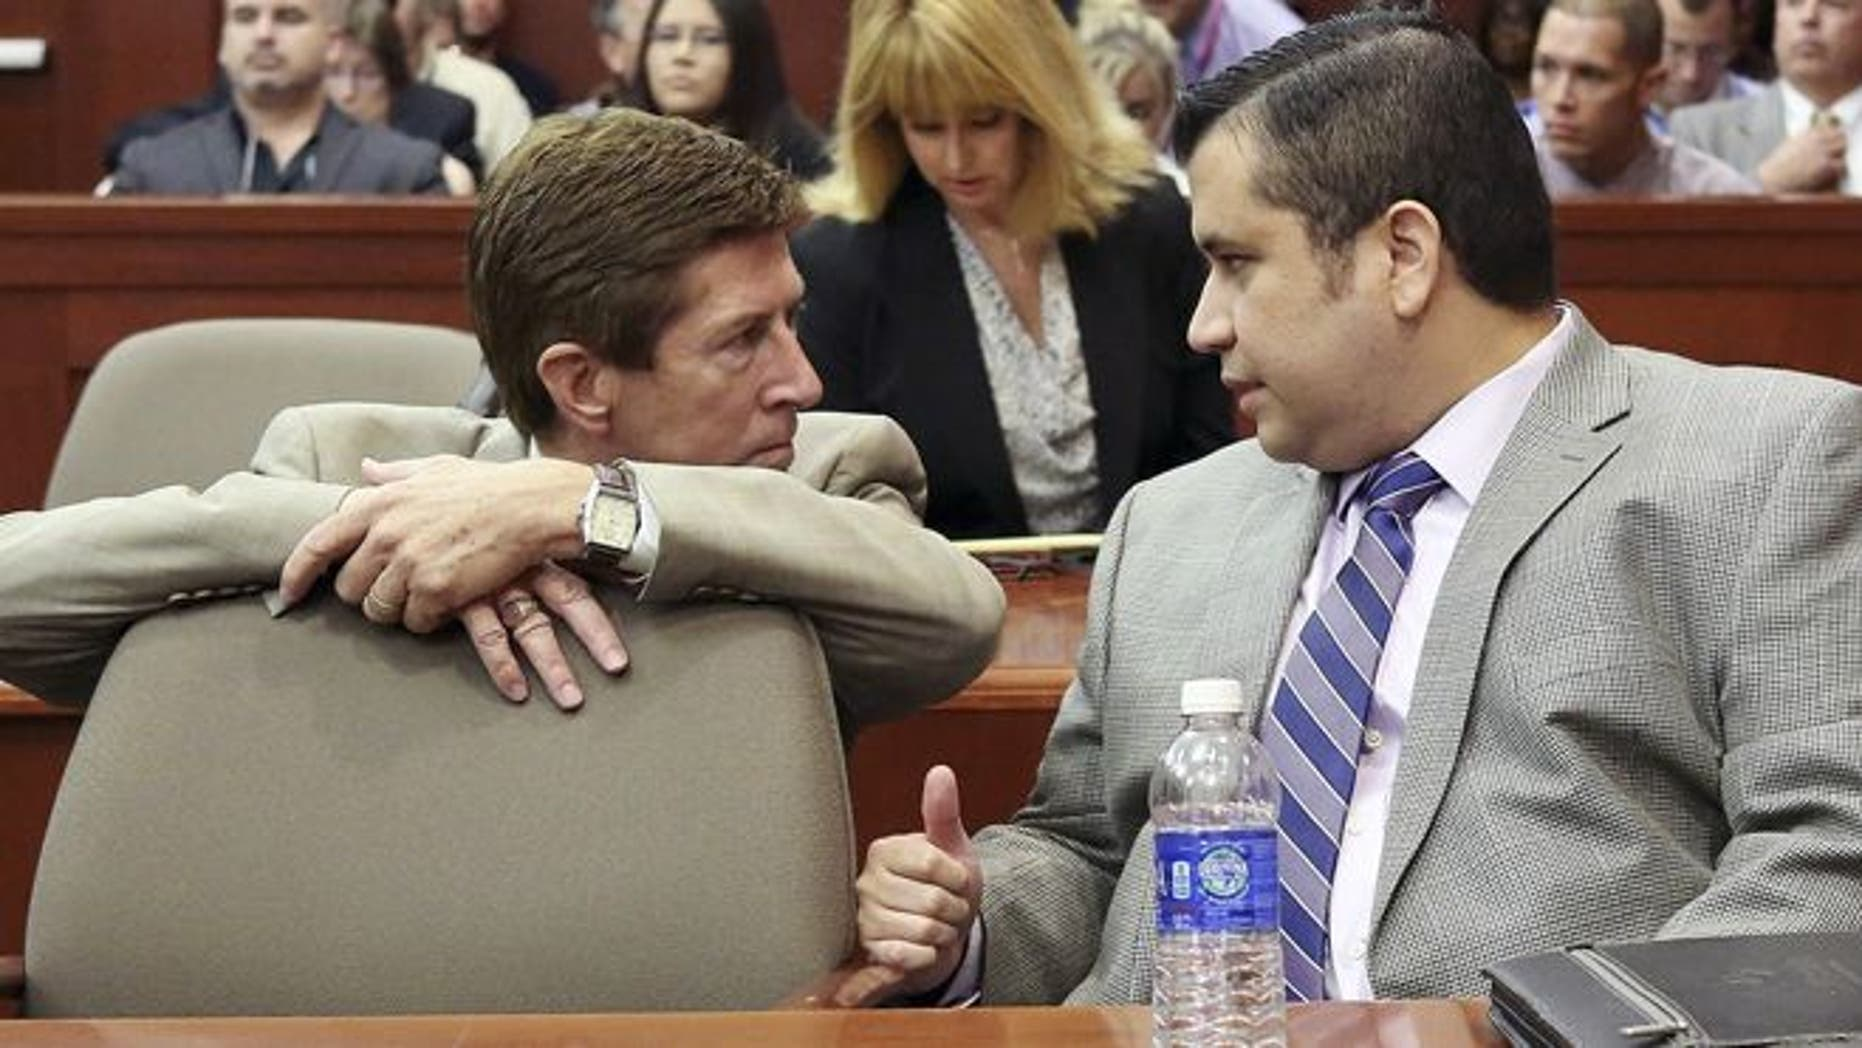 June 27, 2013: George Zimmerman, right, speaks with defense attorney Mark O'Mara during his trial in Seminole circuit court in Sanford, Fla.